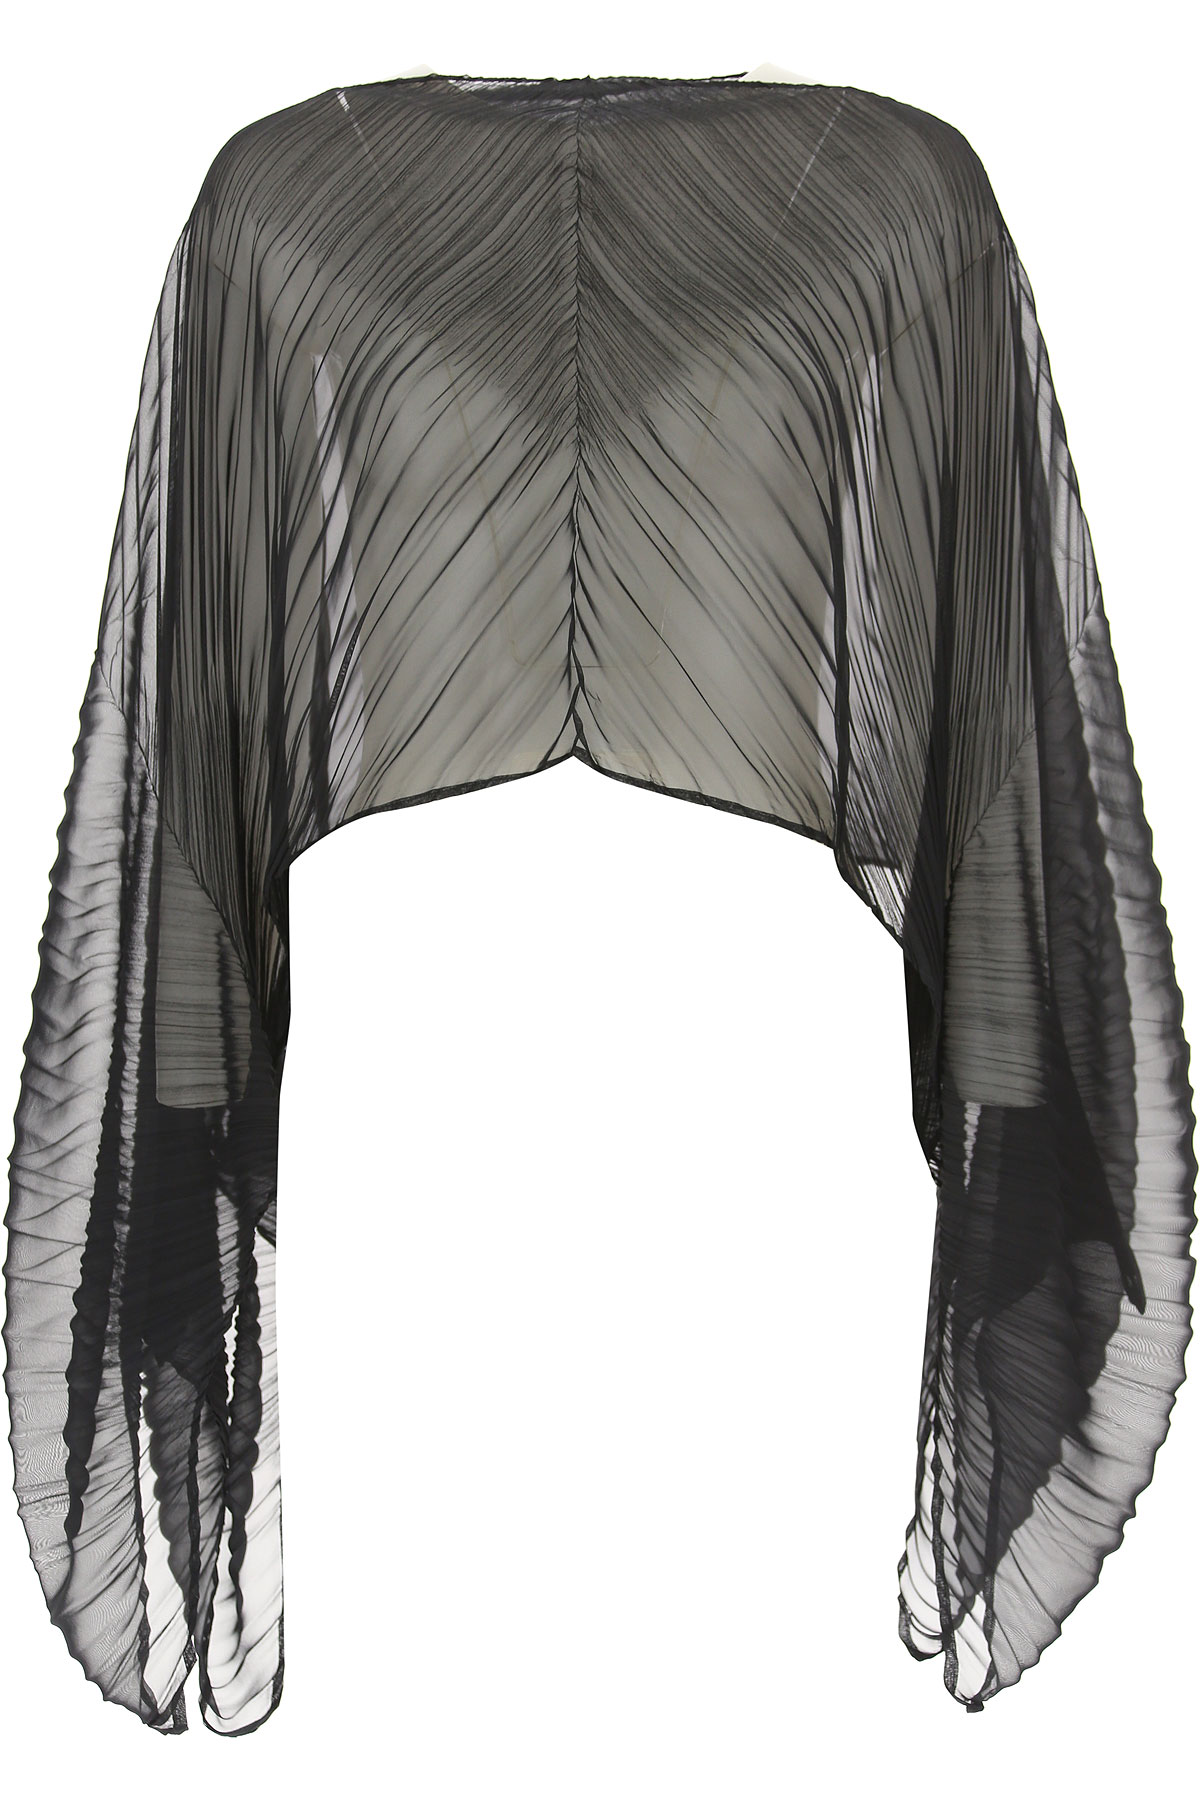 Image of Issey Miyake Scarf for Women, Black, polyester, 2017